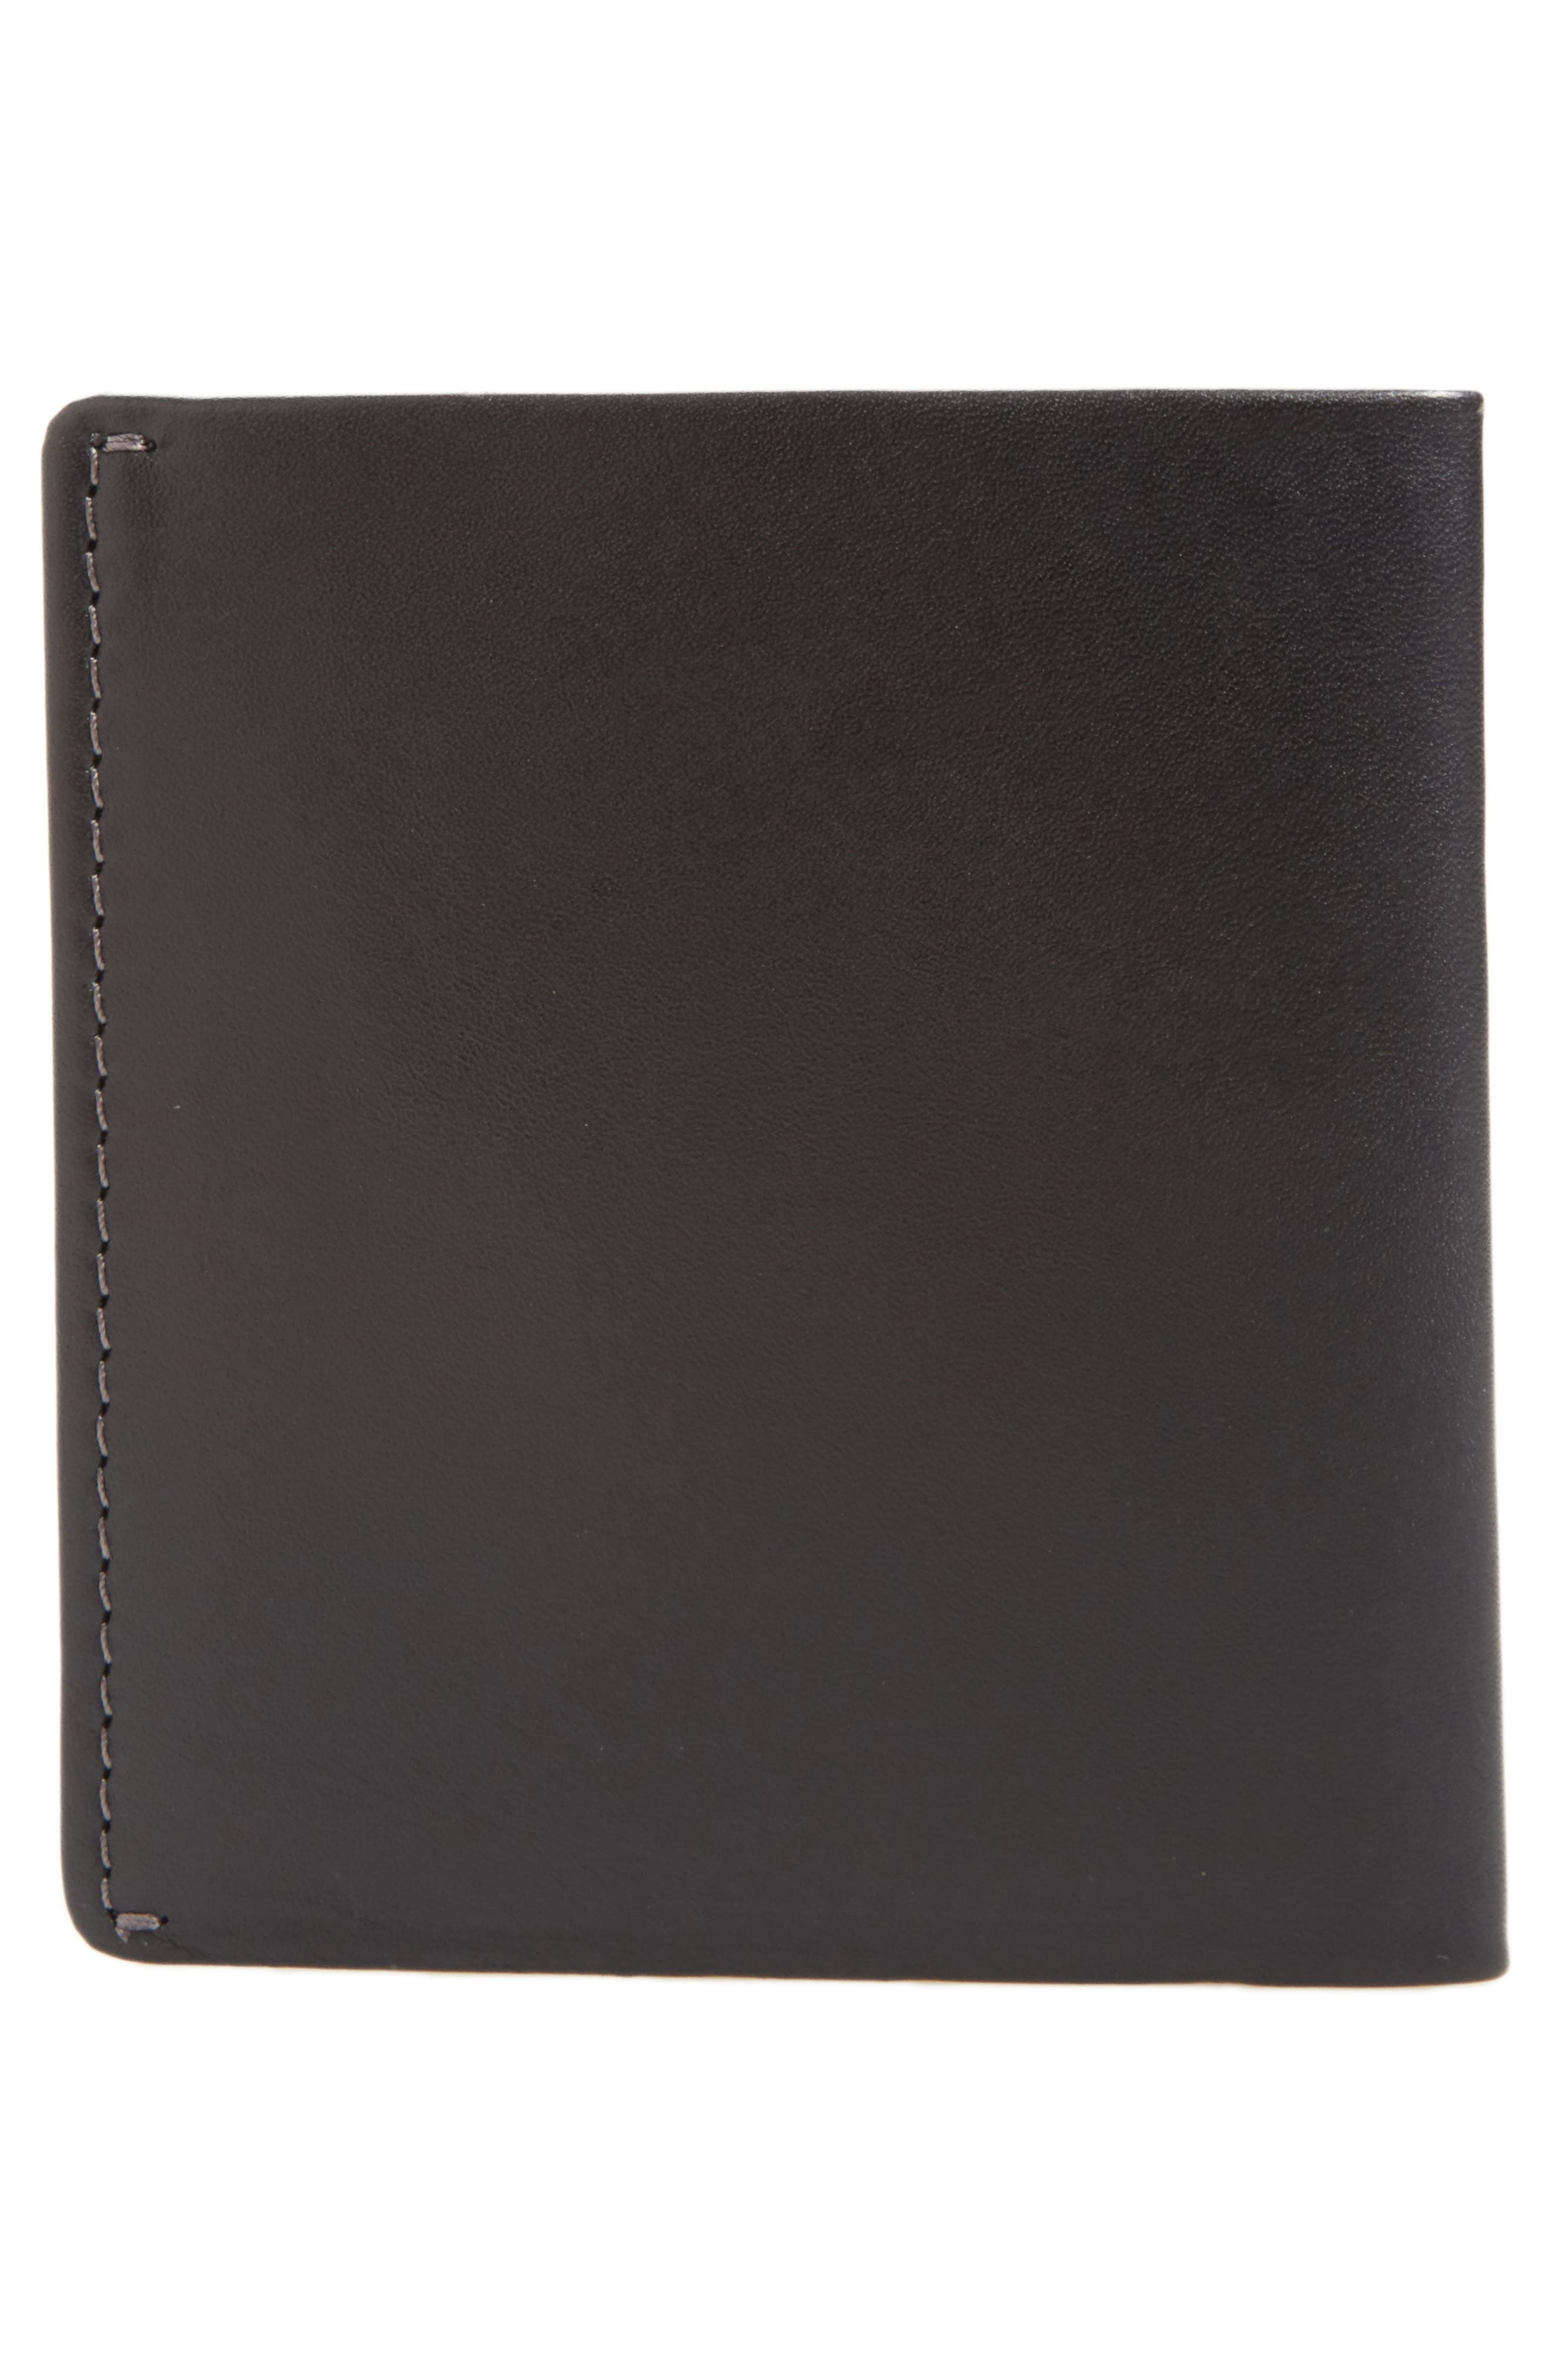 Note Sleeve Wallet,                             Alternate thumbnail 3, color,                             Black